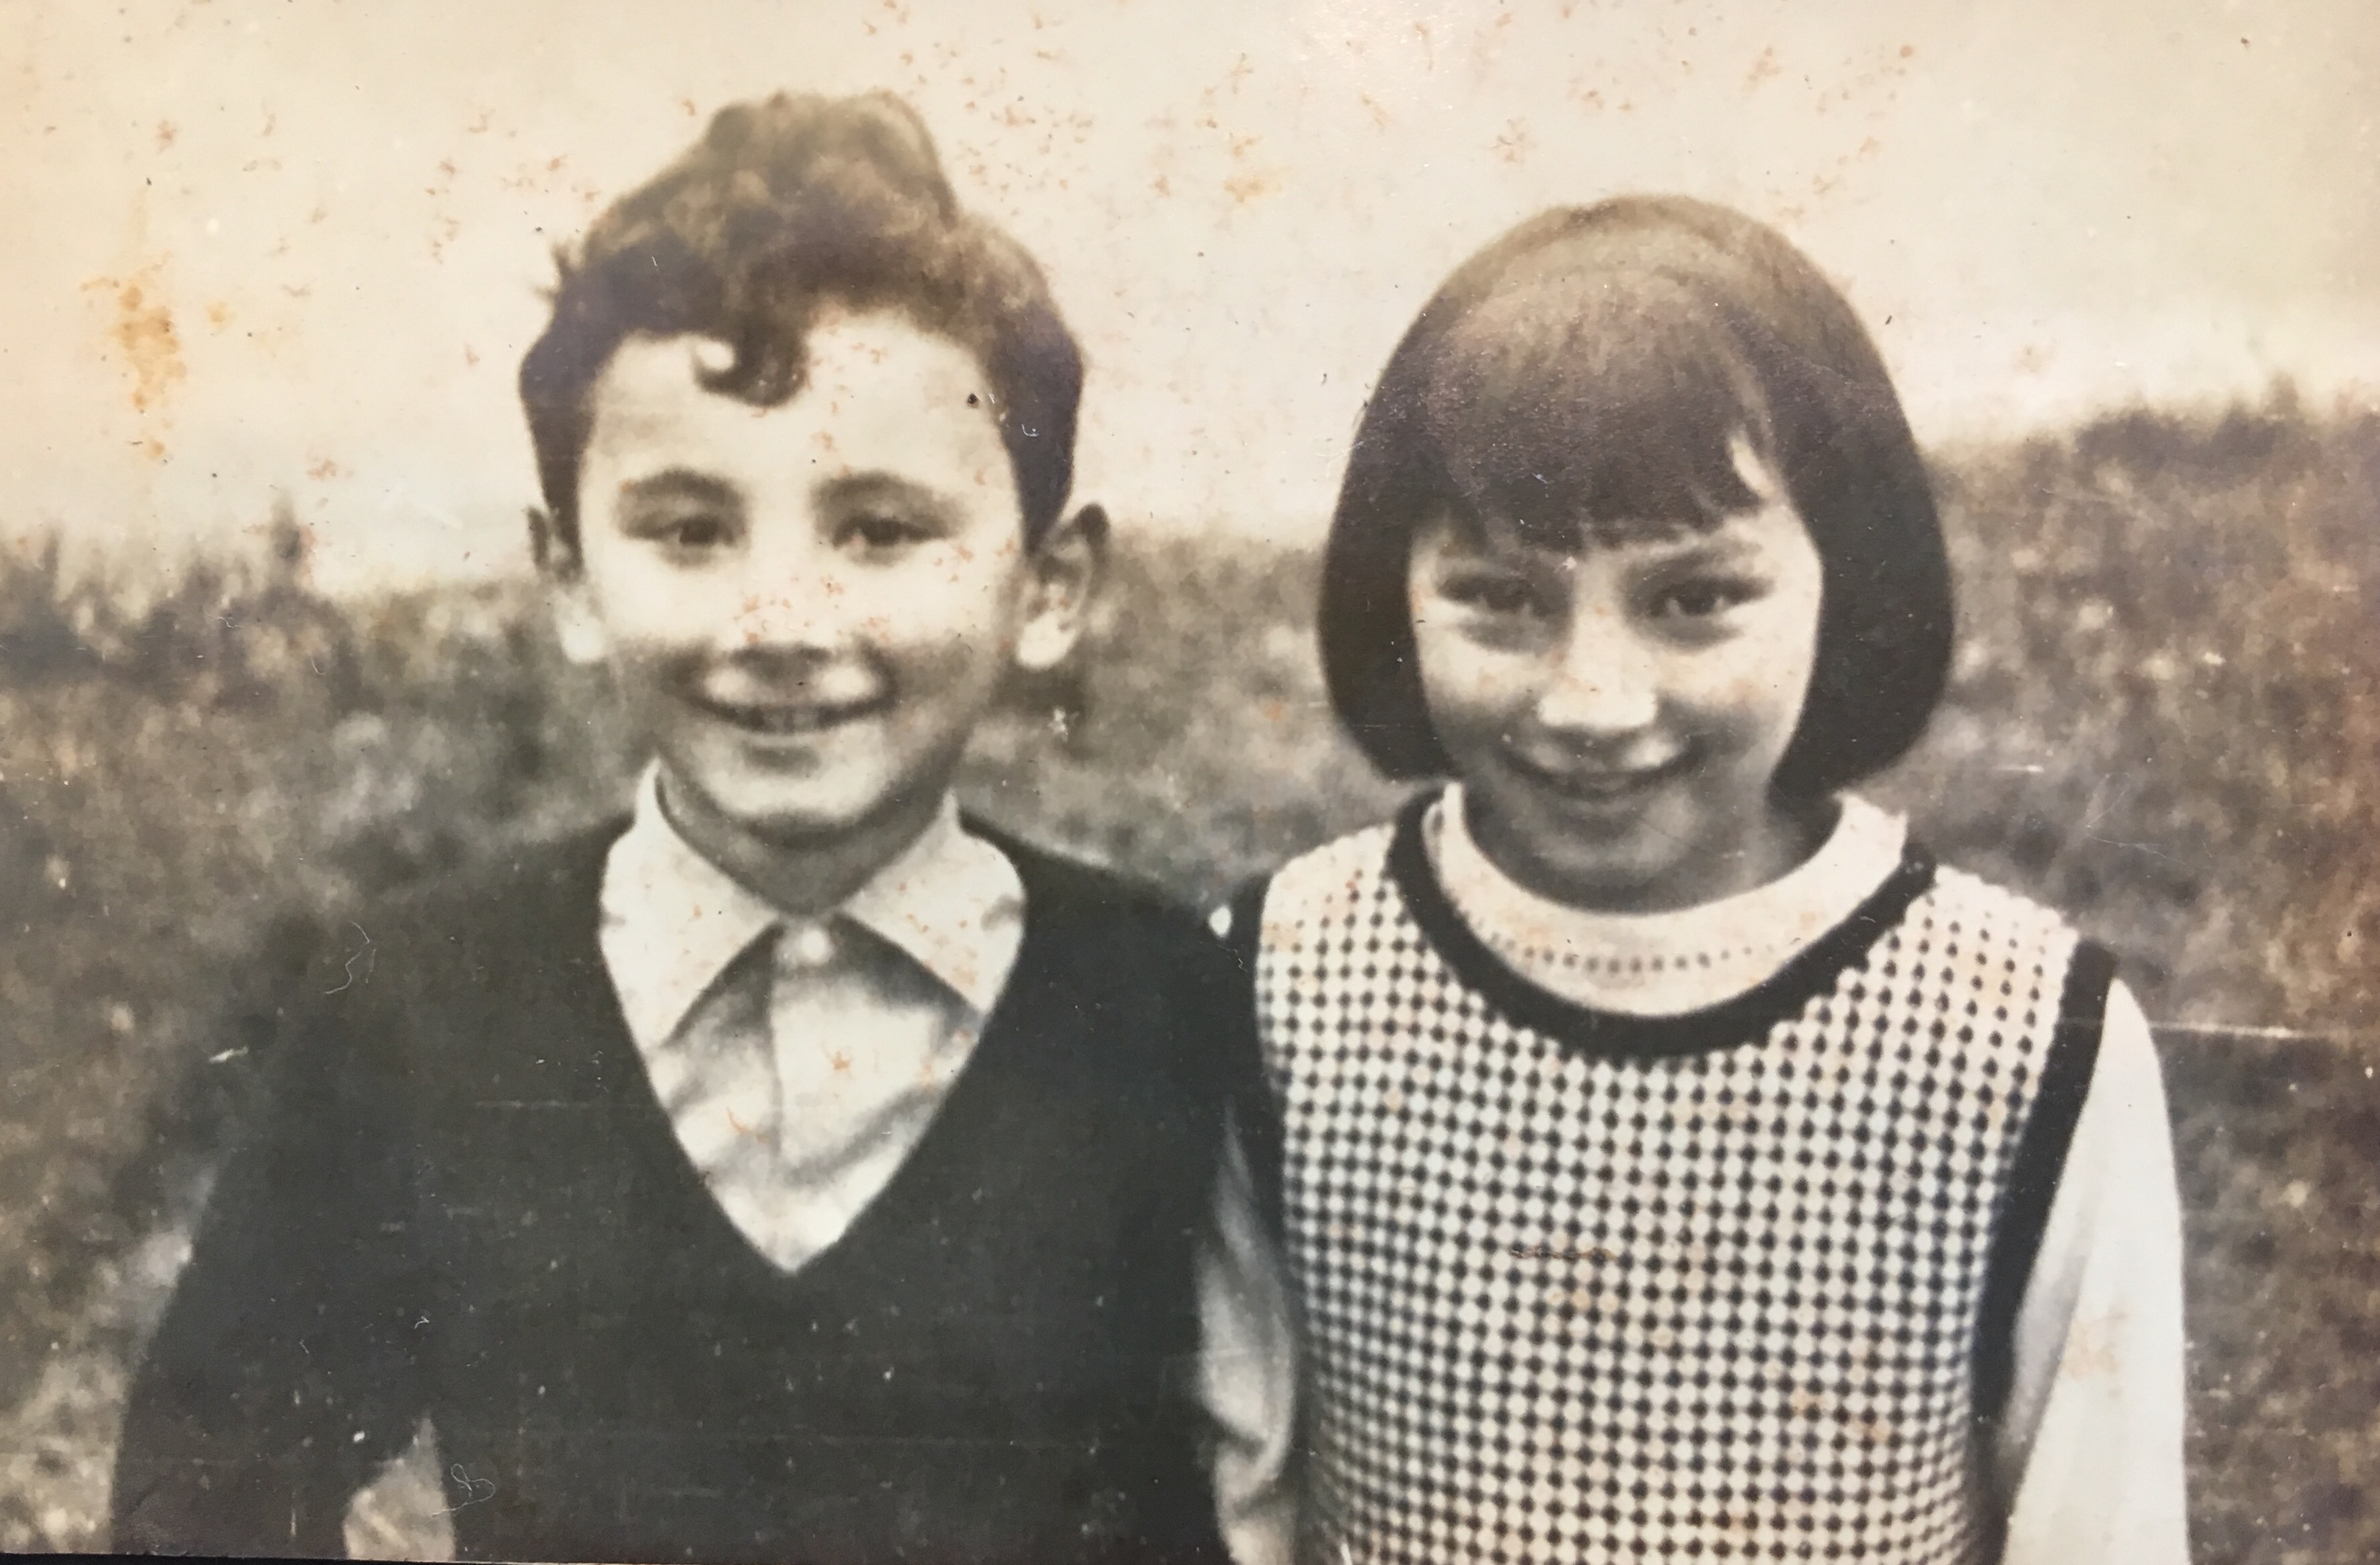 Nick with sister Jenny, around 1962 or 1963